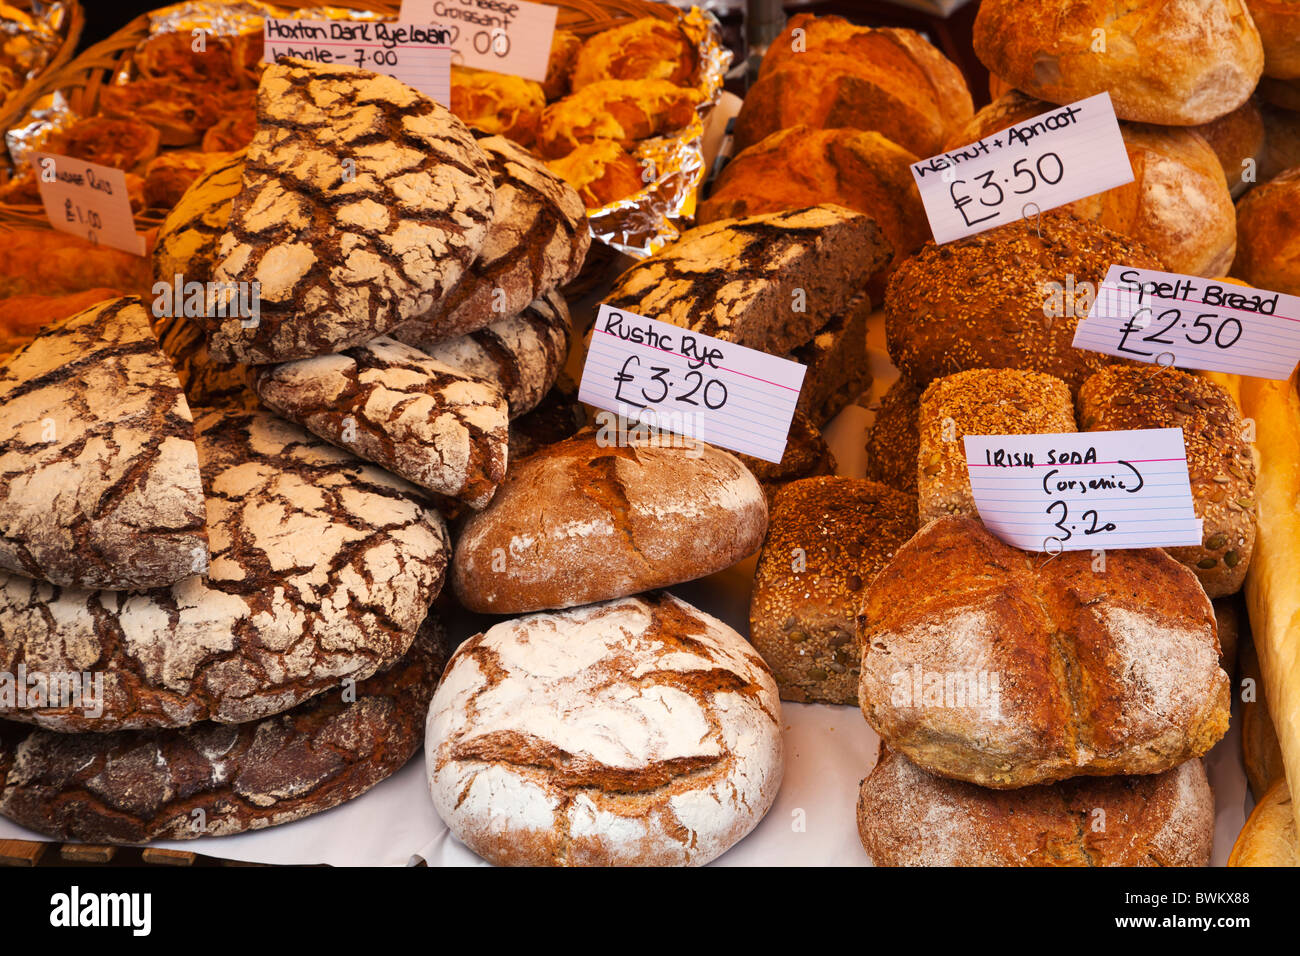 Sélection de pains faits localement le pain de grains entiers au marché de Portobello Road Photo Stock